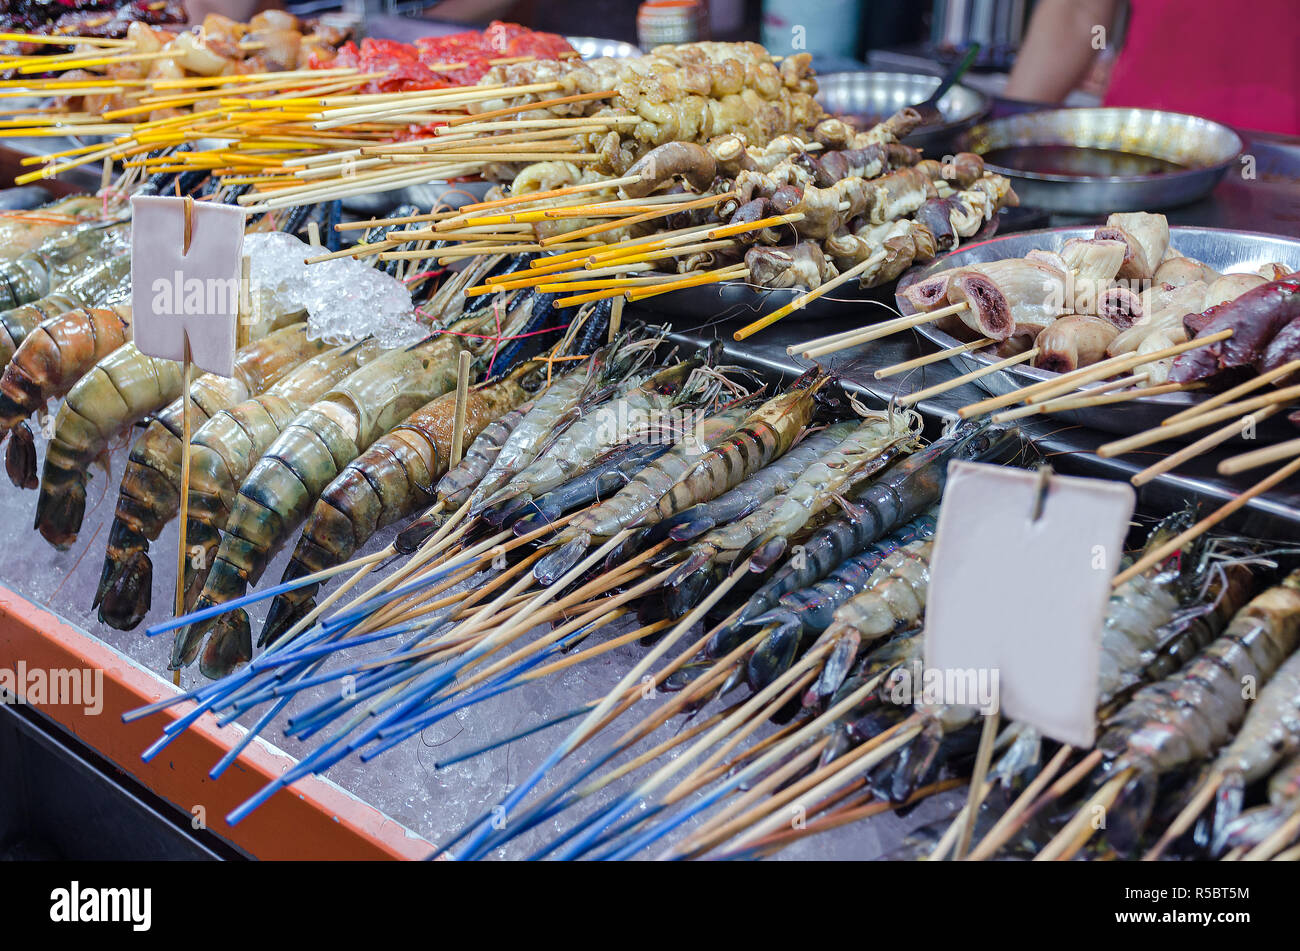 Stall with fresh chilled shrimps, seafood. Food Street Jalan Alor - in Kuala Lumpur, Malaysia. Stock Photo